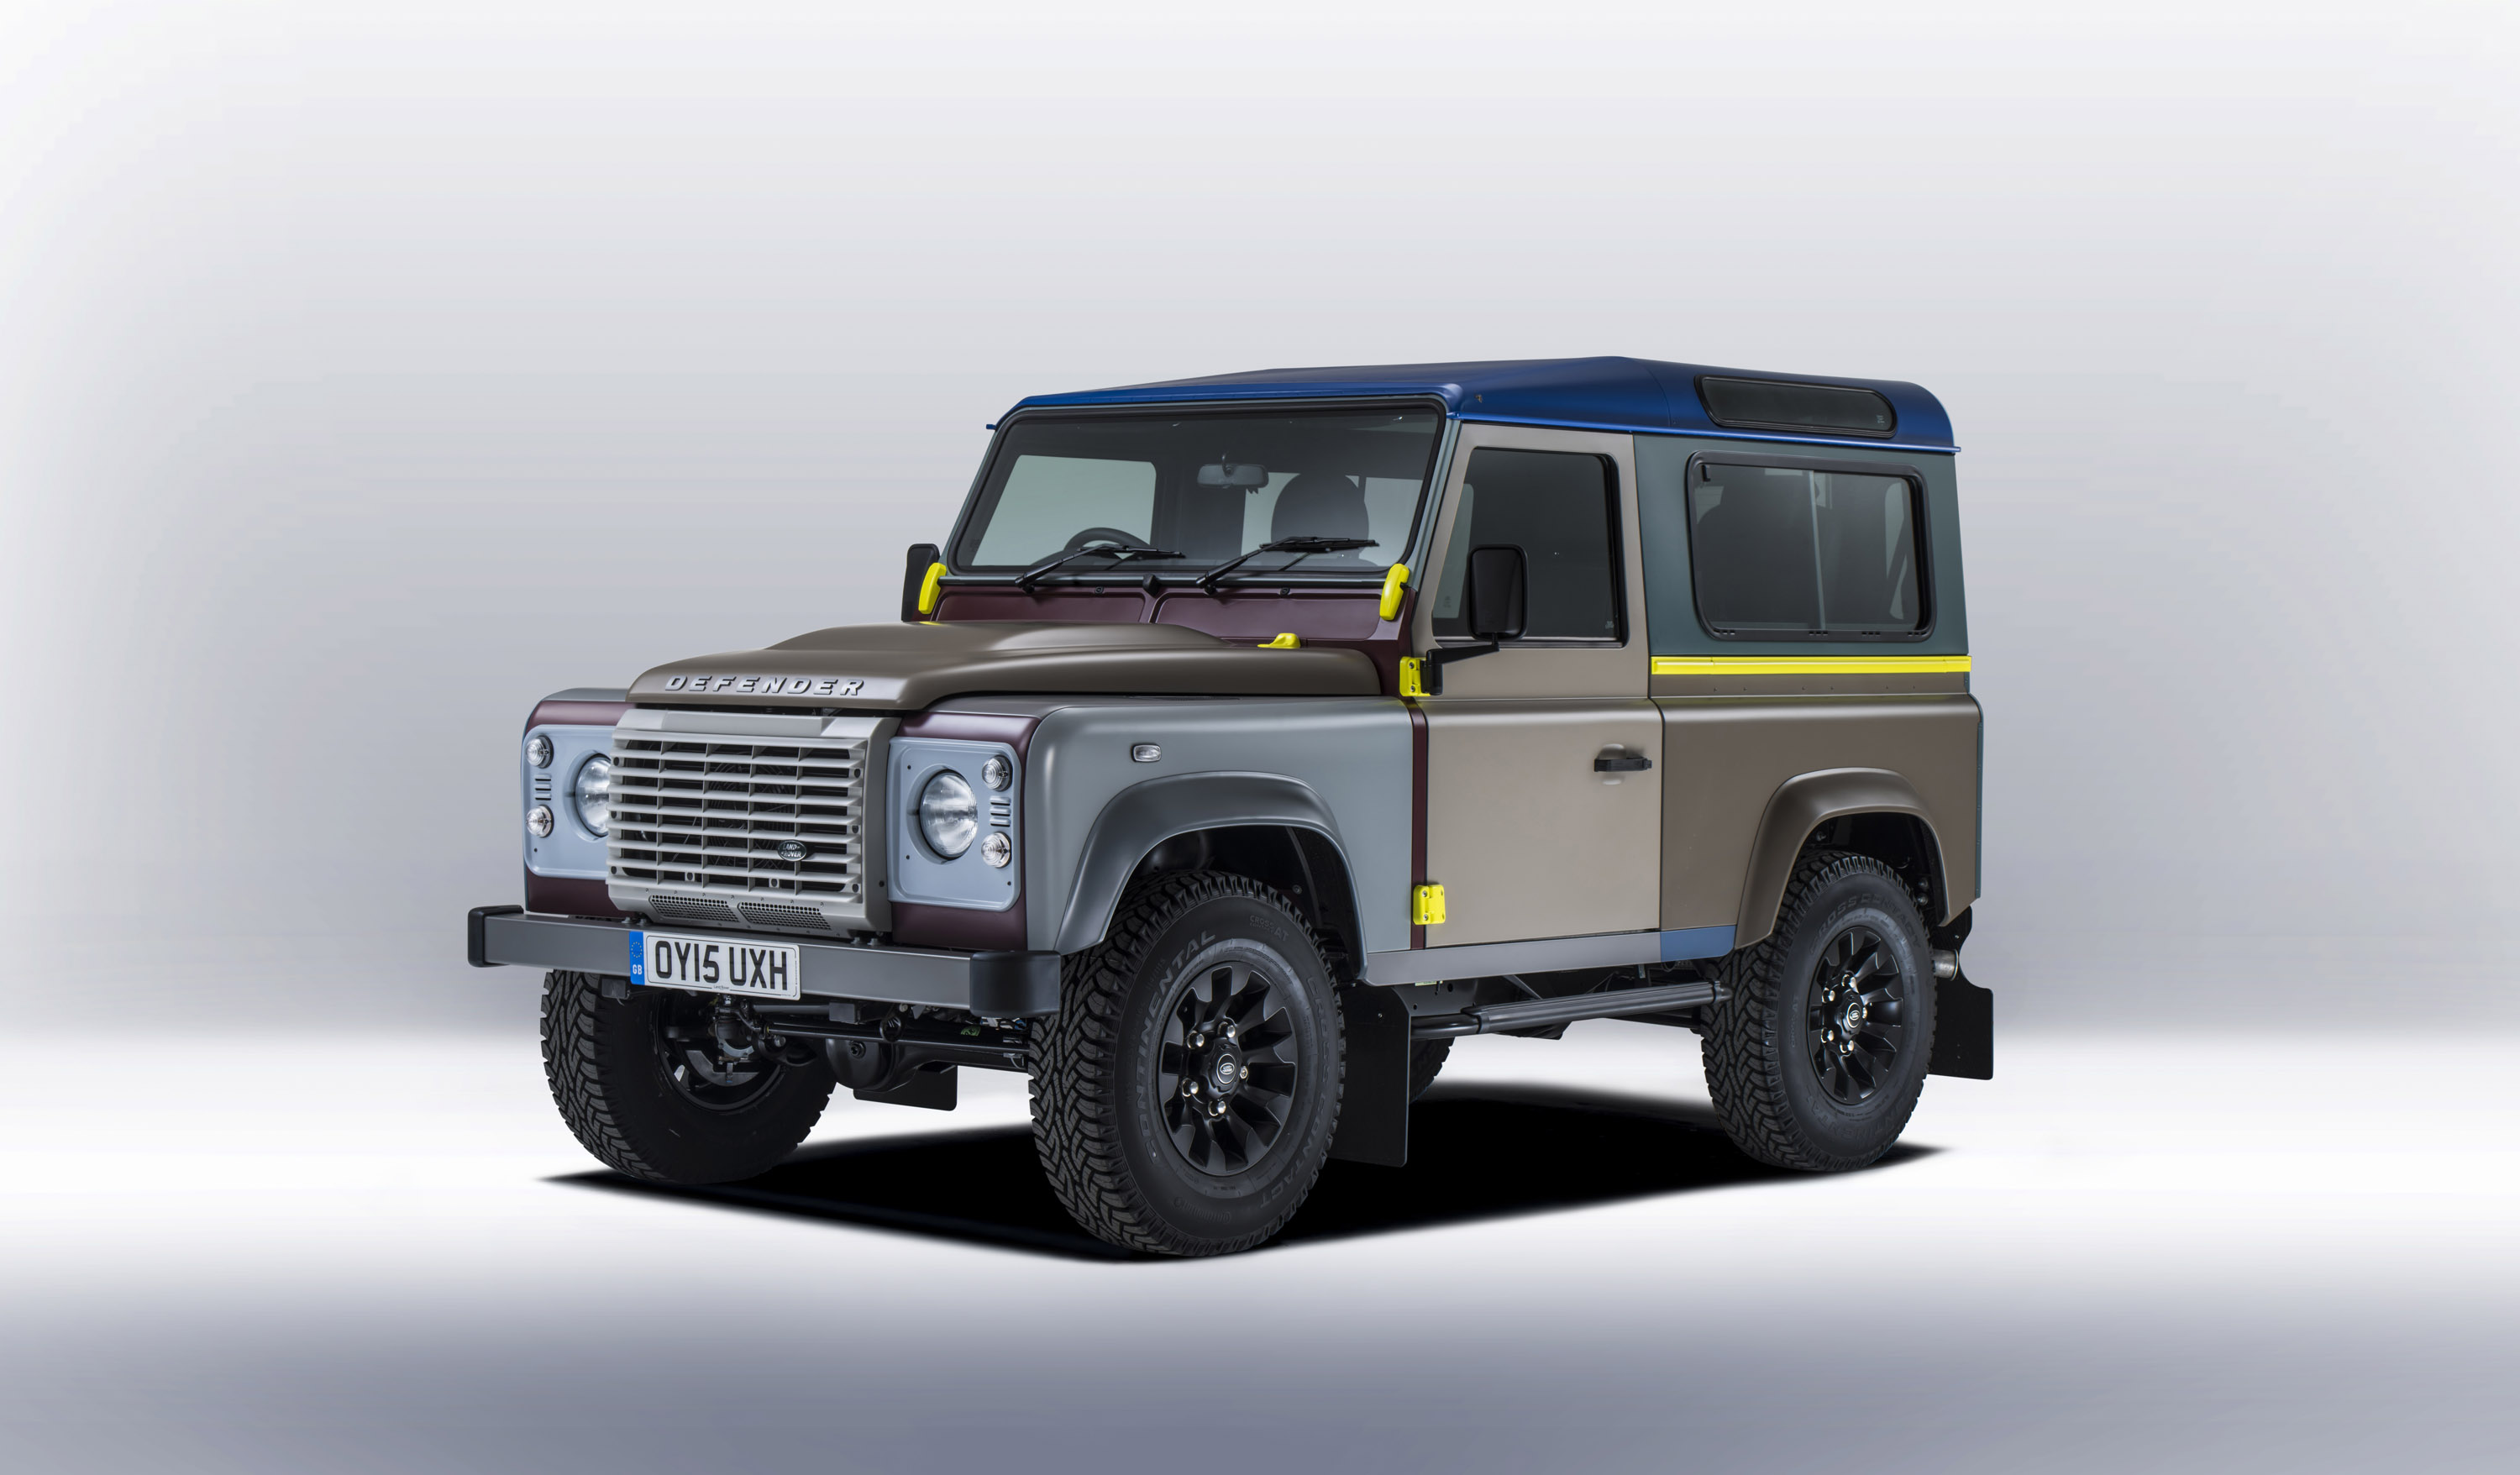 Land Rover Defender Paul Smith Special Edition photo #1